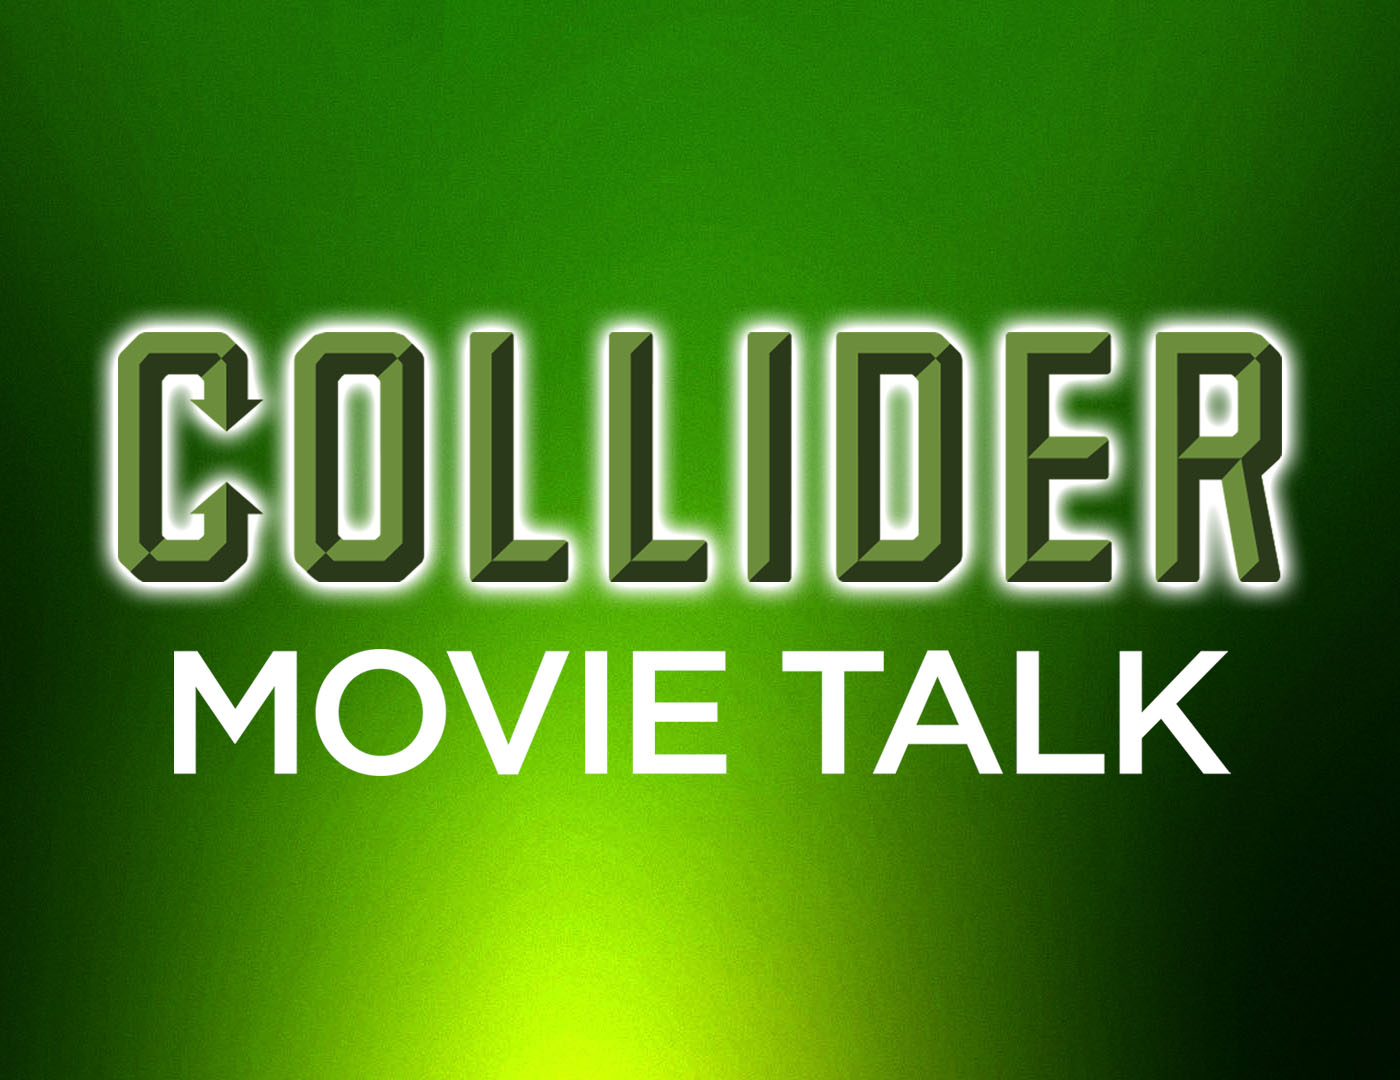 Collider Movie Talk - Spider-Man Movie Under Marvel Creative Control